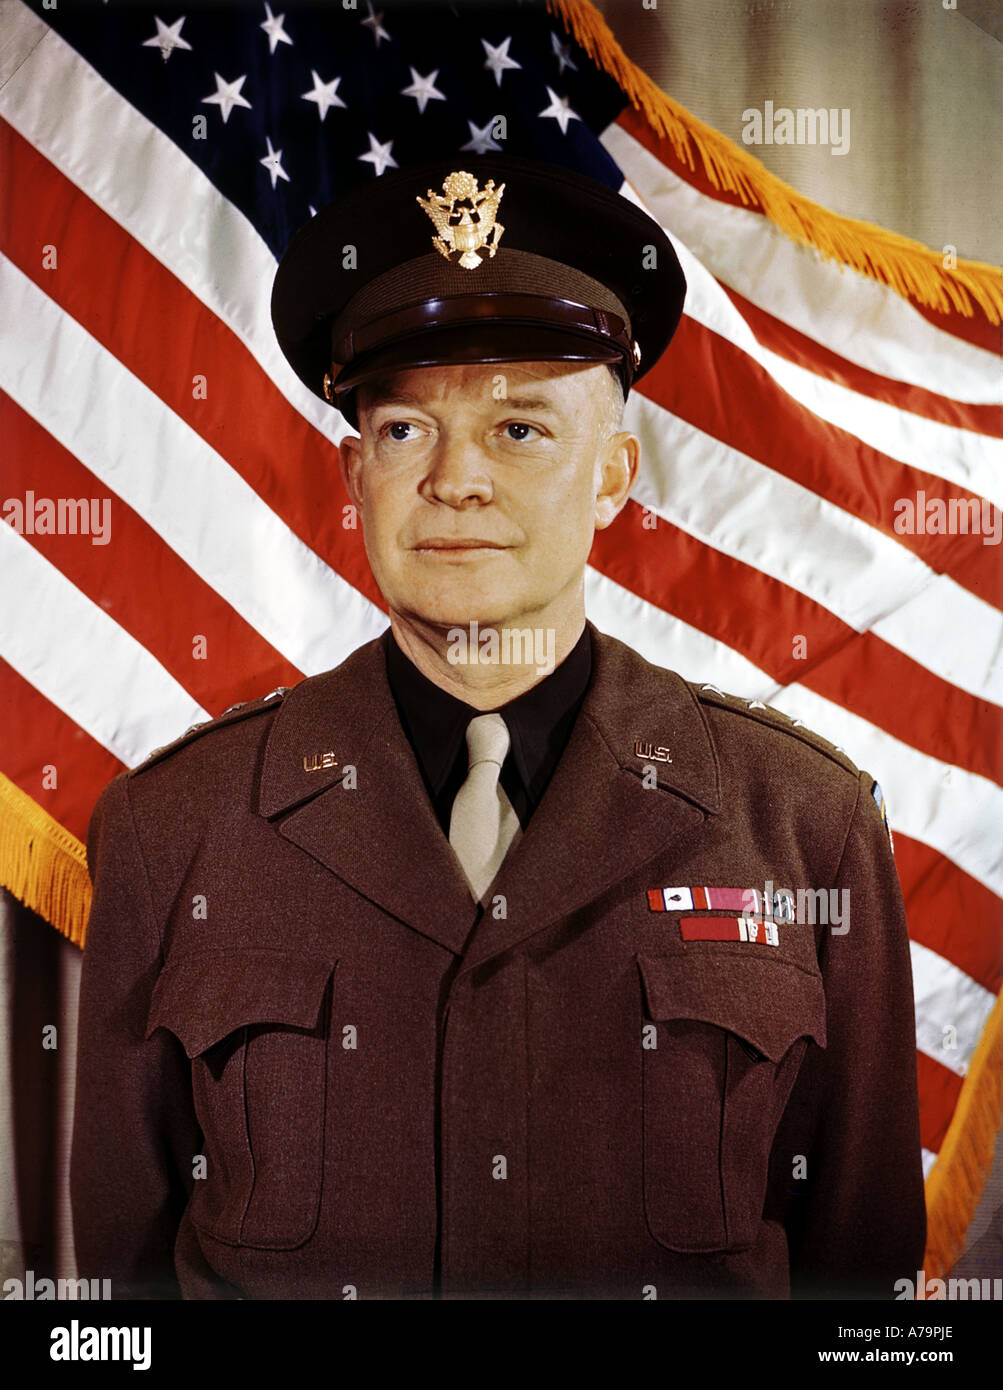 DWIGHT EISENHOWER US soldier and statesman here as Commander in Chief Allied Forces in 1944 - Stock Image